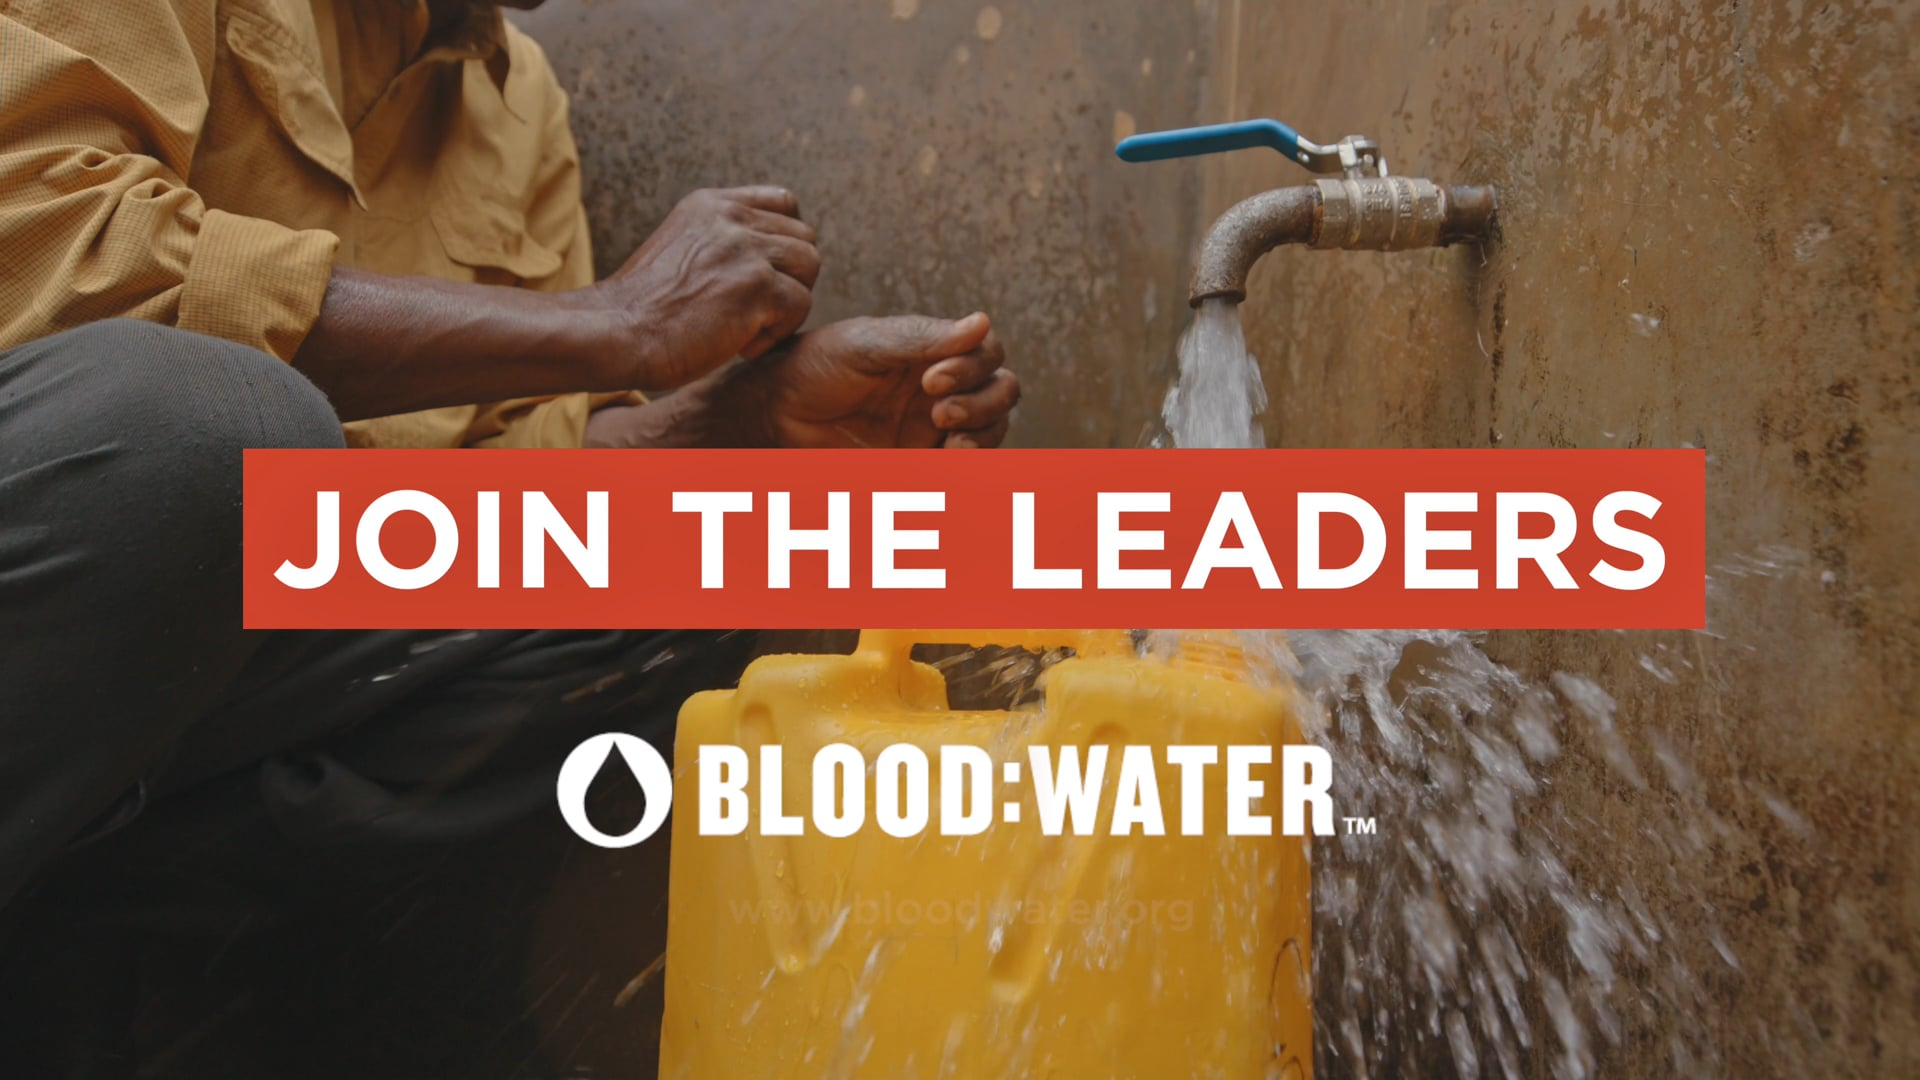 """Blood:Water - """"Join the Leaders"""""""